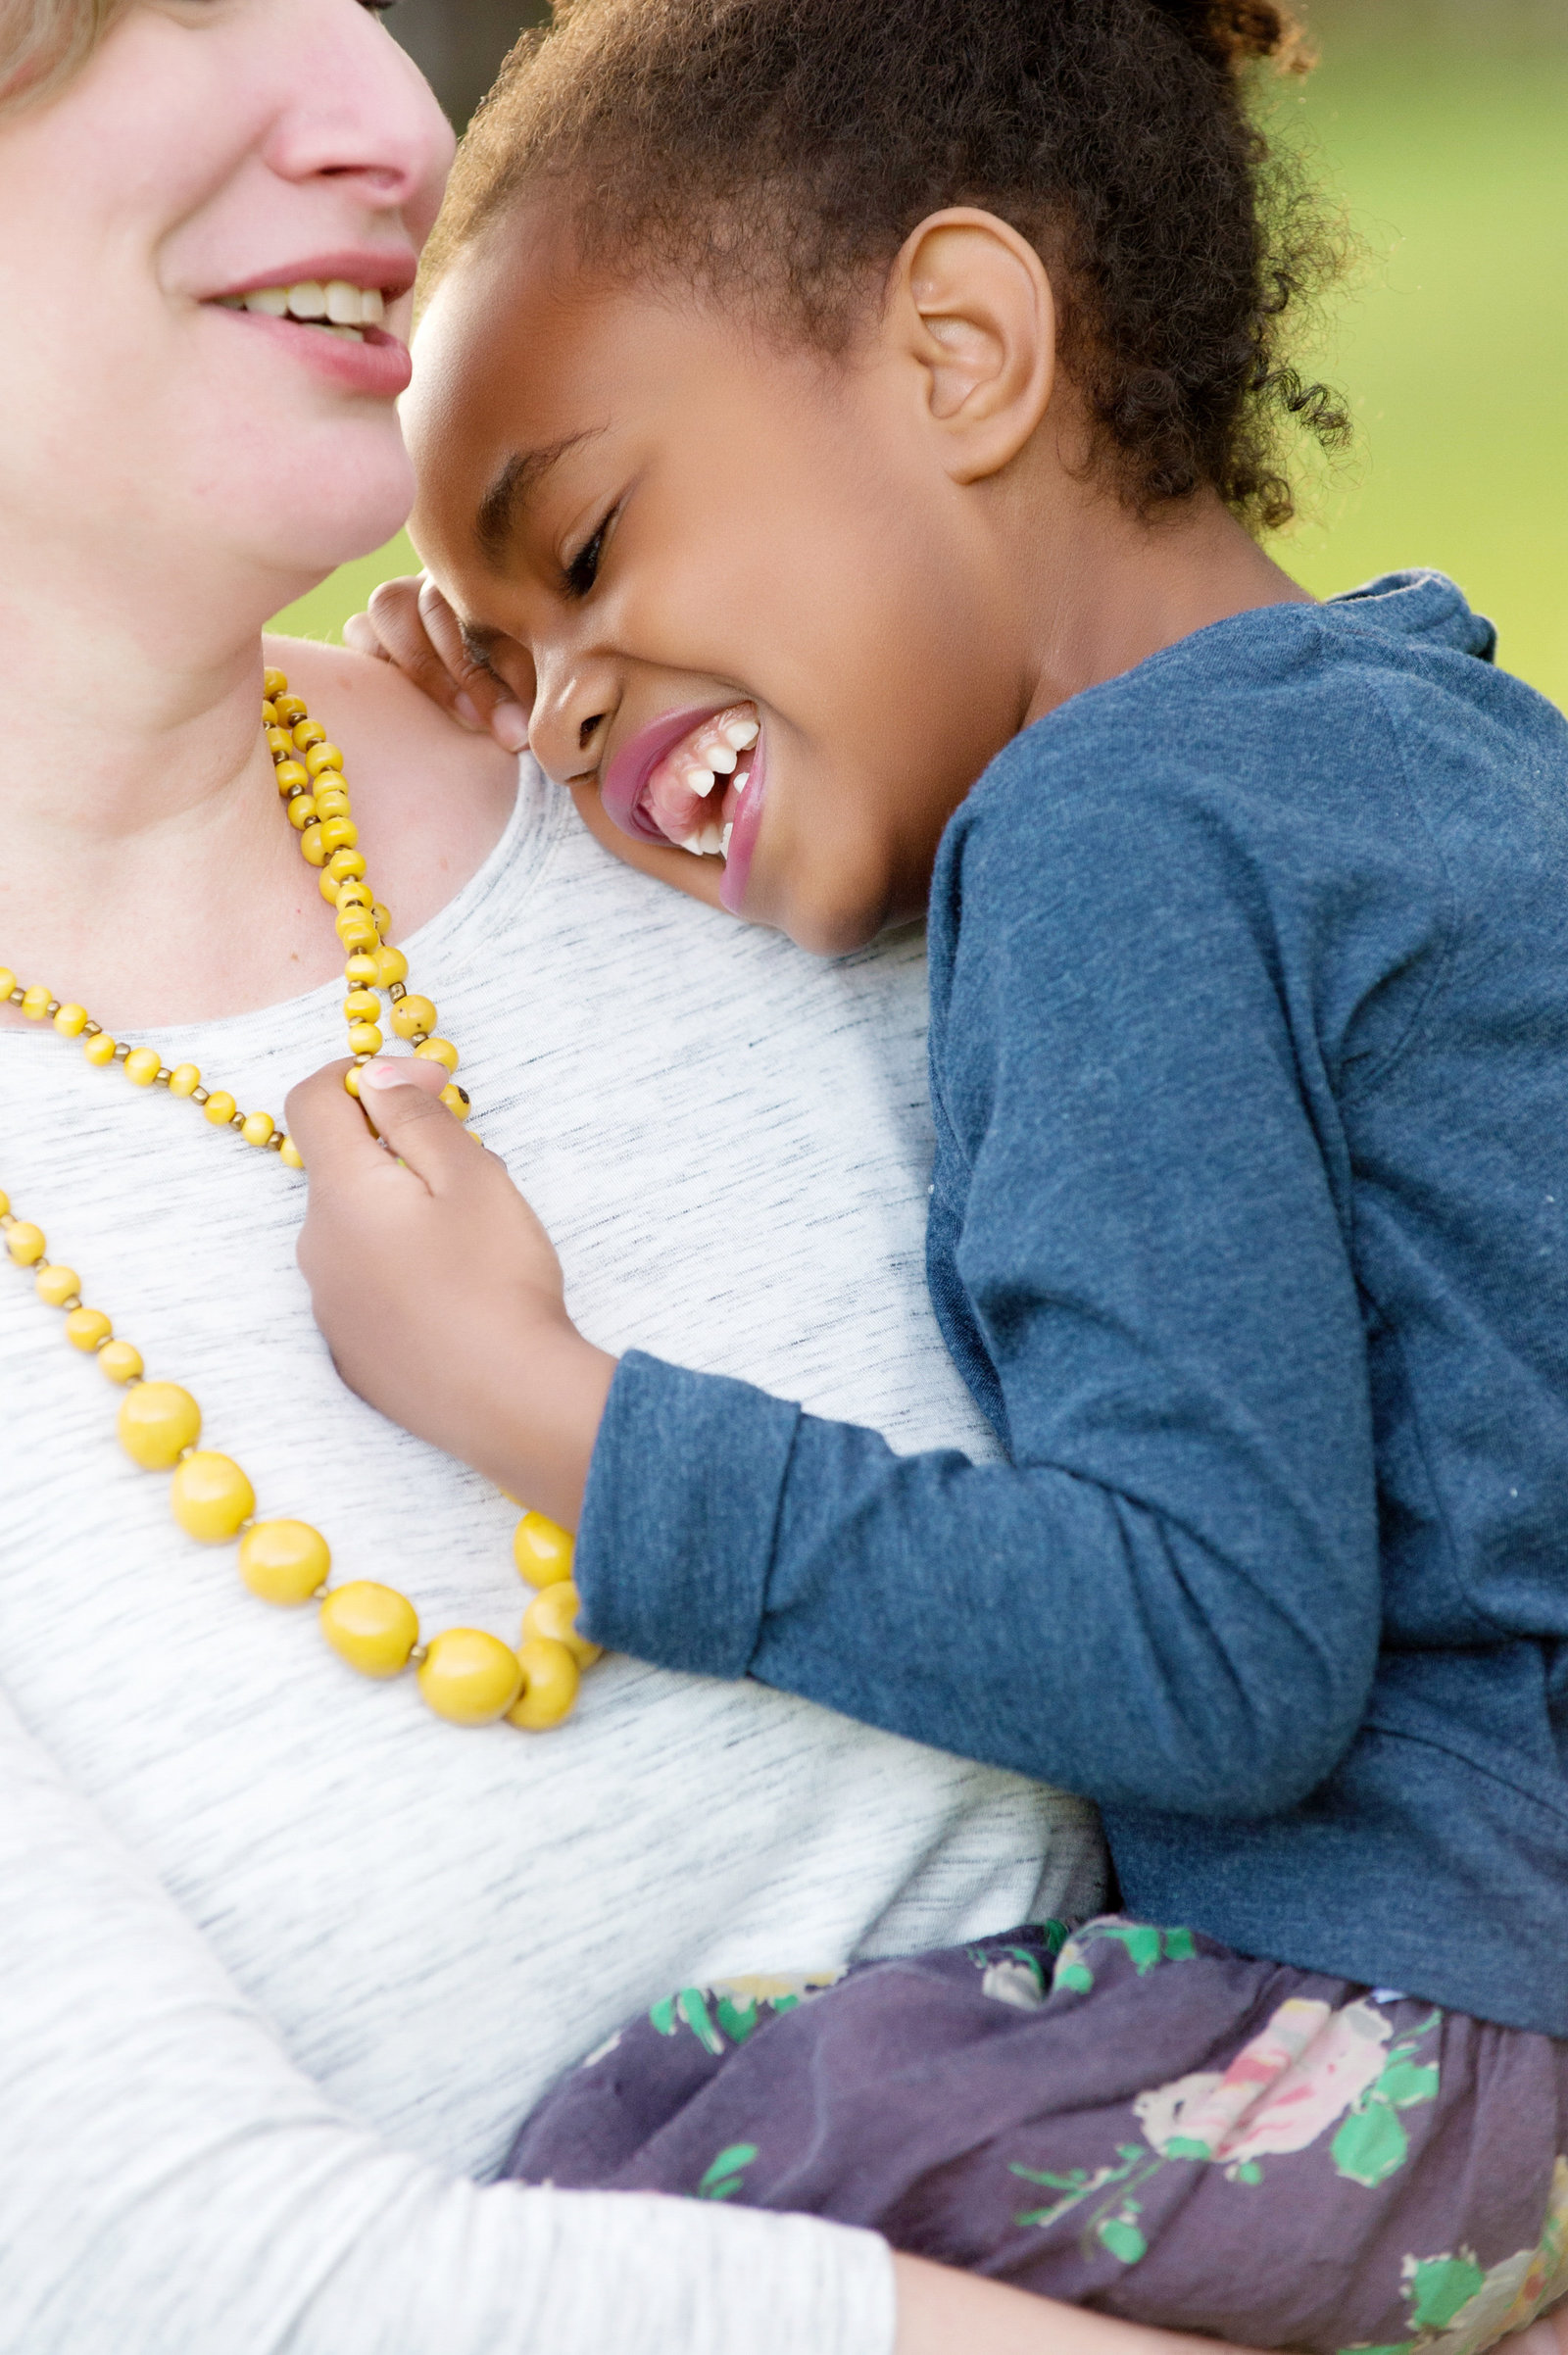 a mom holds her daughter as she laughs and plays with her yellow necklace